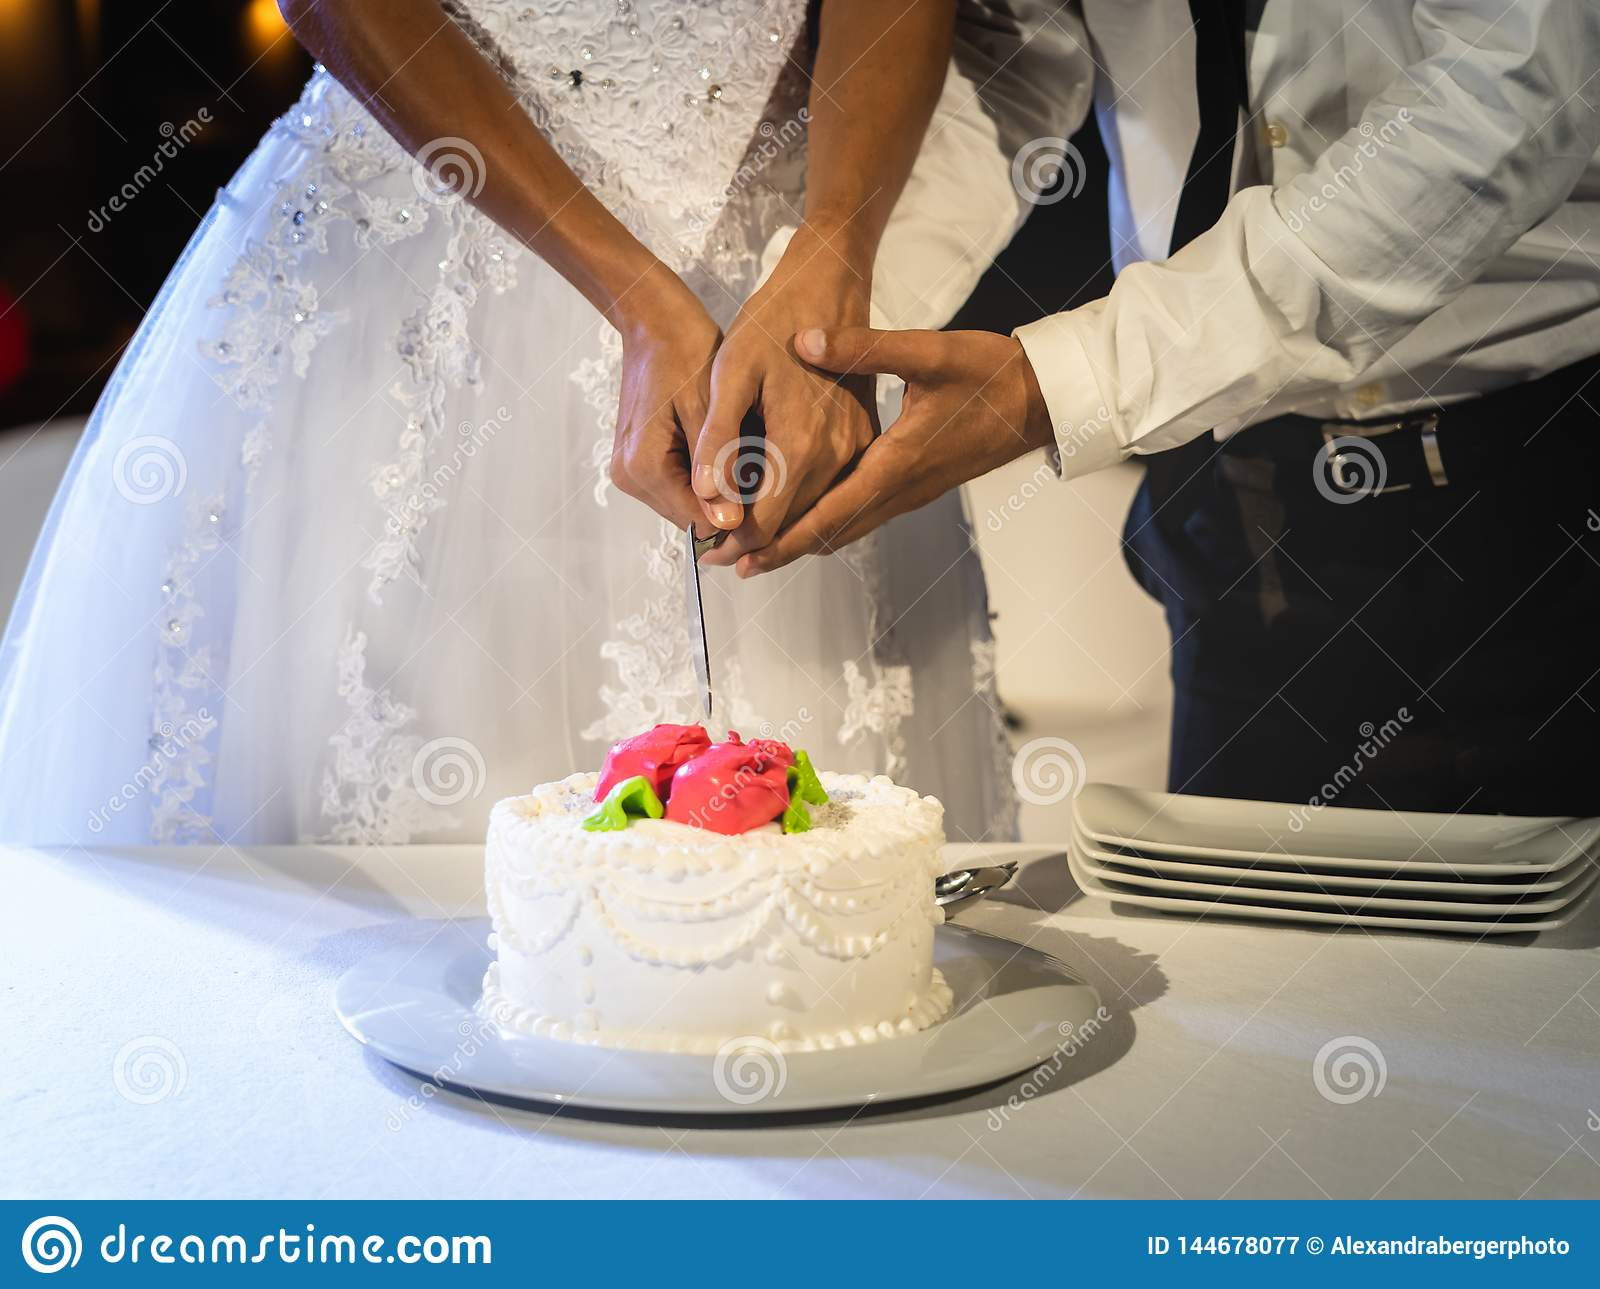 Bride and groom together cut cake at their wedding